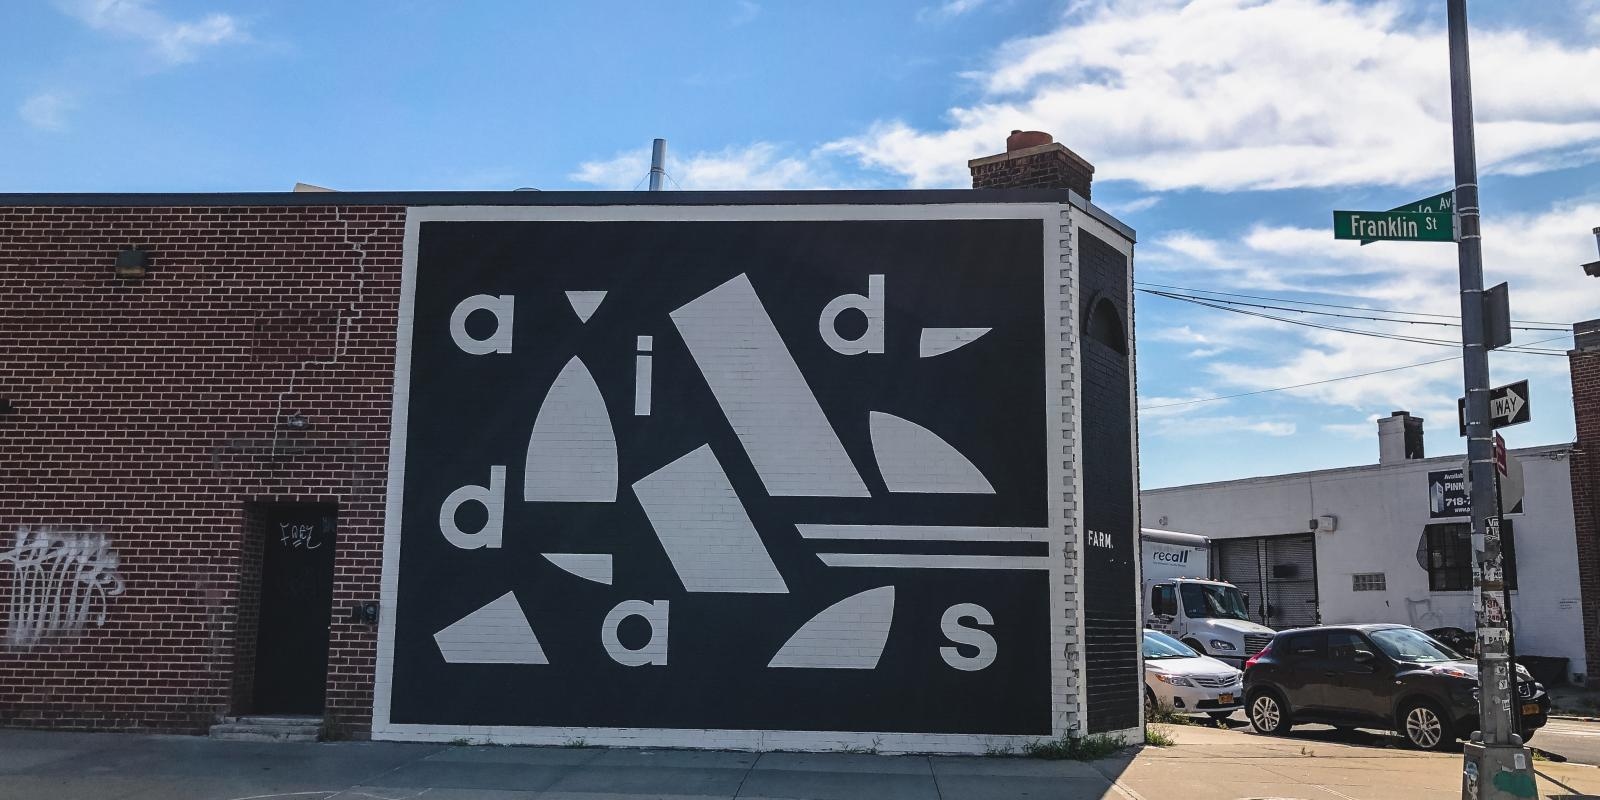 ▷ Things to do in Greenpoint Brooklyn | Our Ultimate Guide 2019